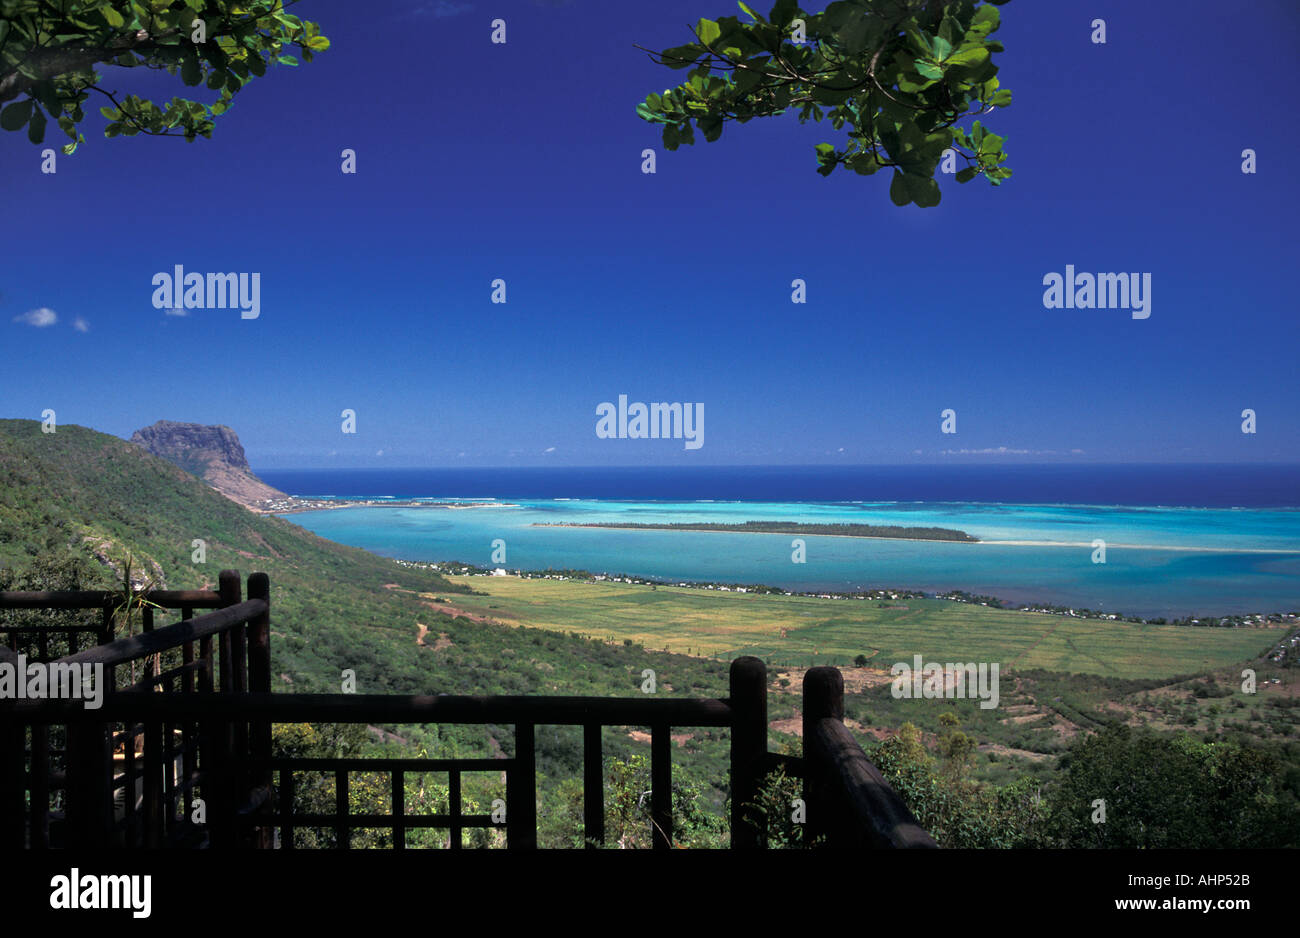 Spectacular view from a balcony of the sea off the coast of Mauritius Indian Ocean - Stock Image